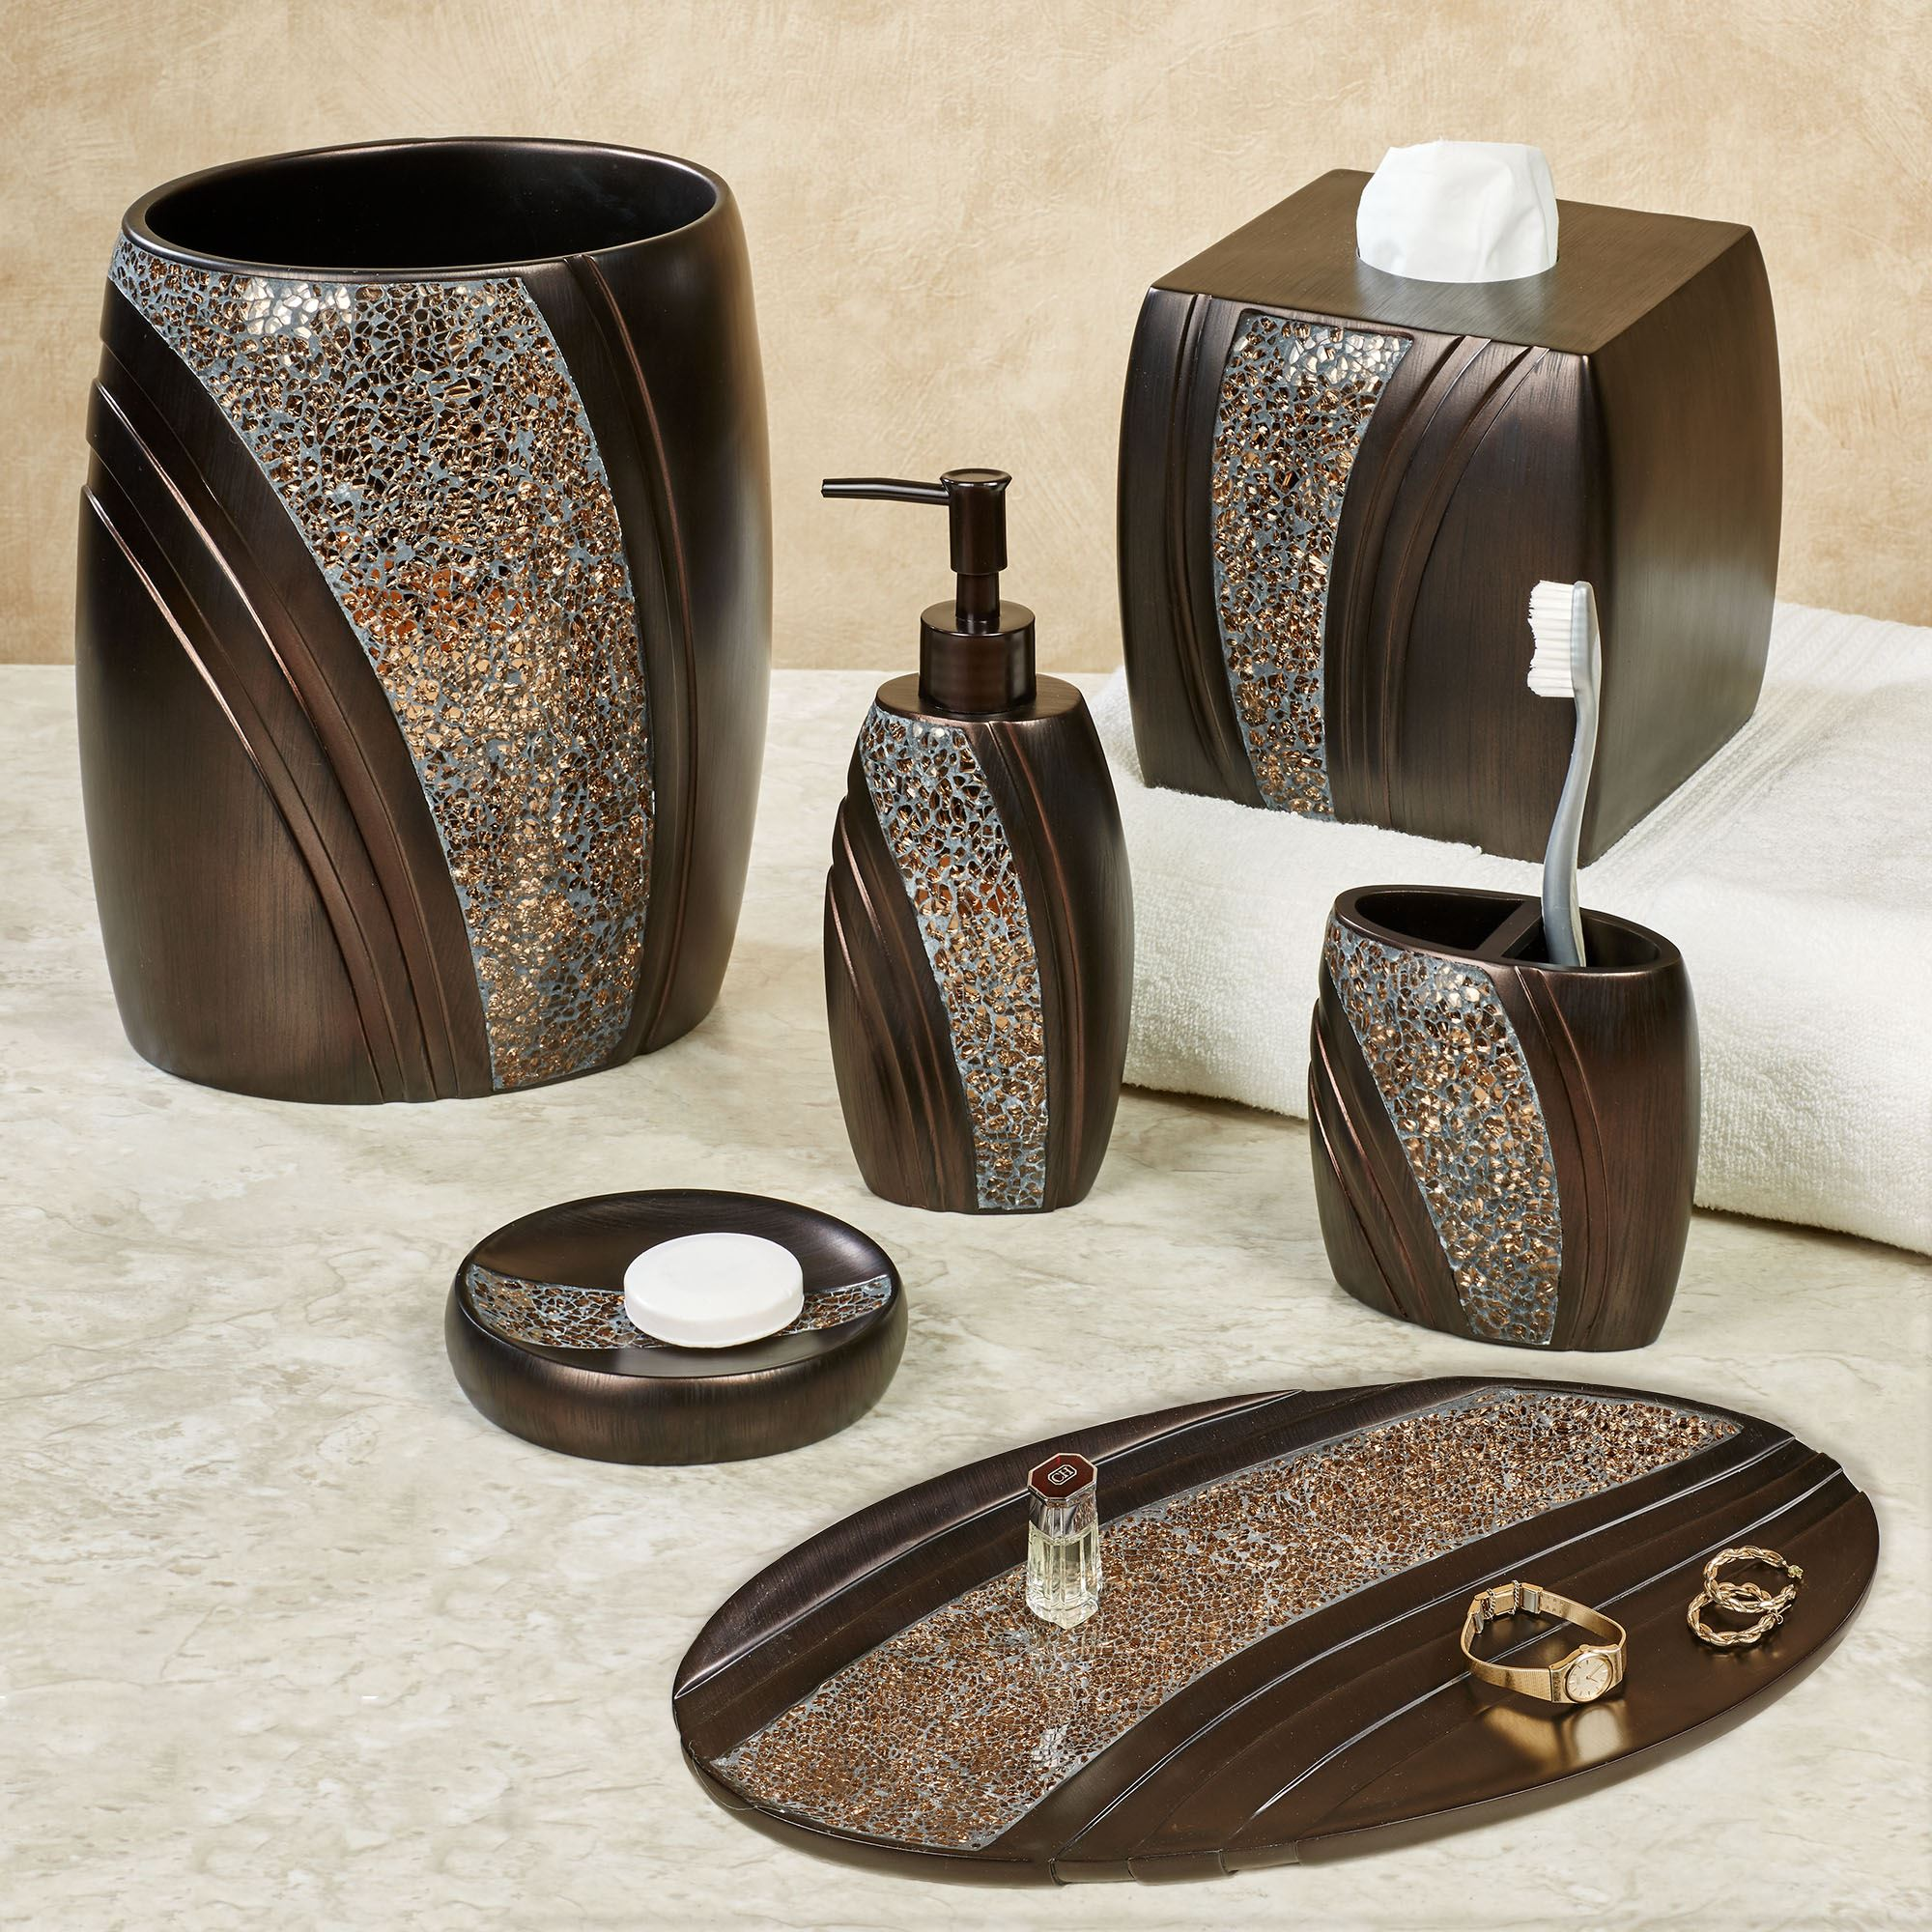 grandeur mosaic bronze bath accessories